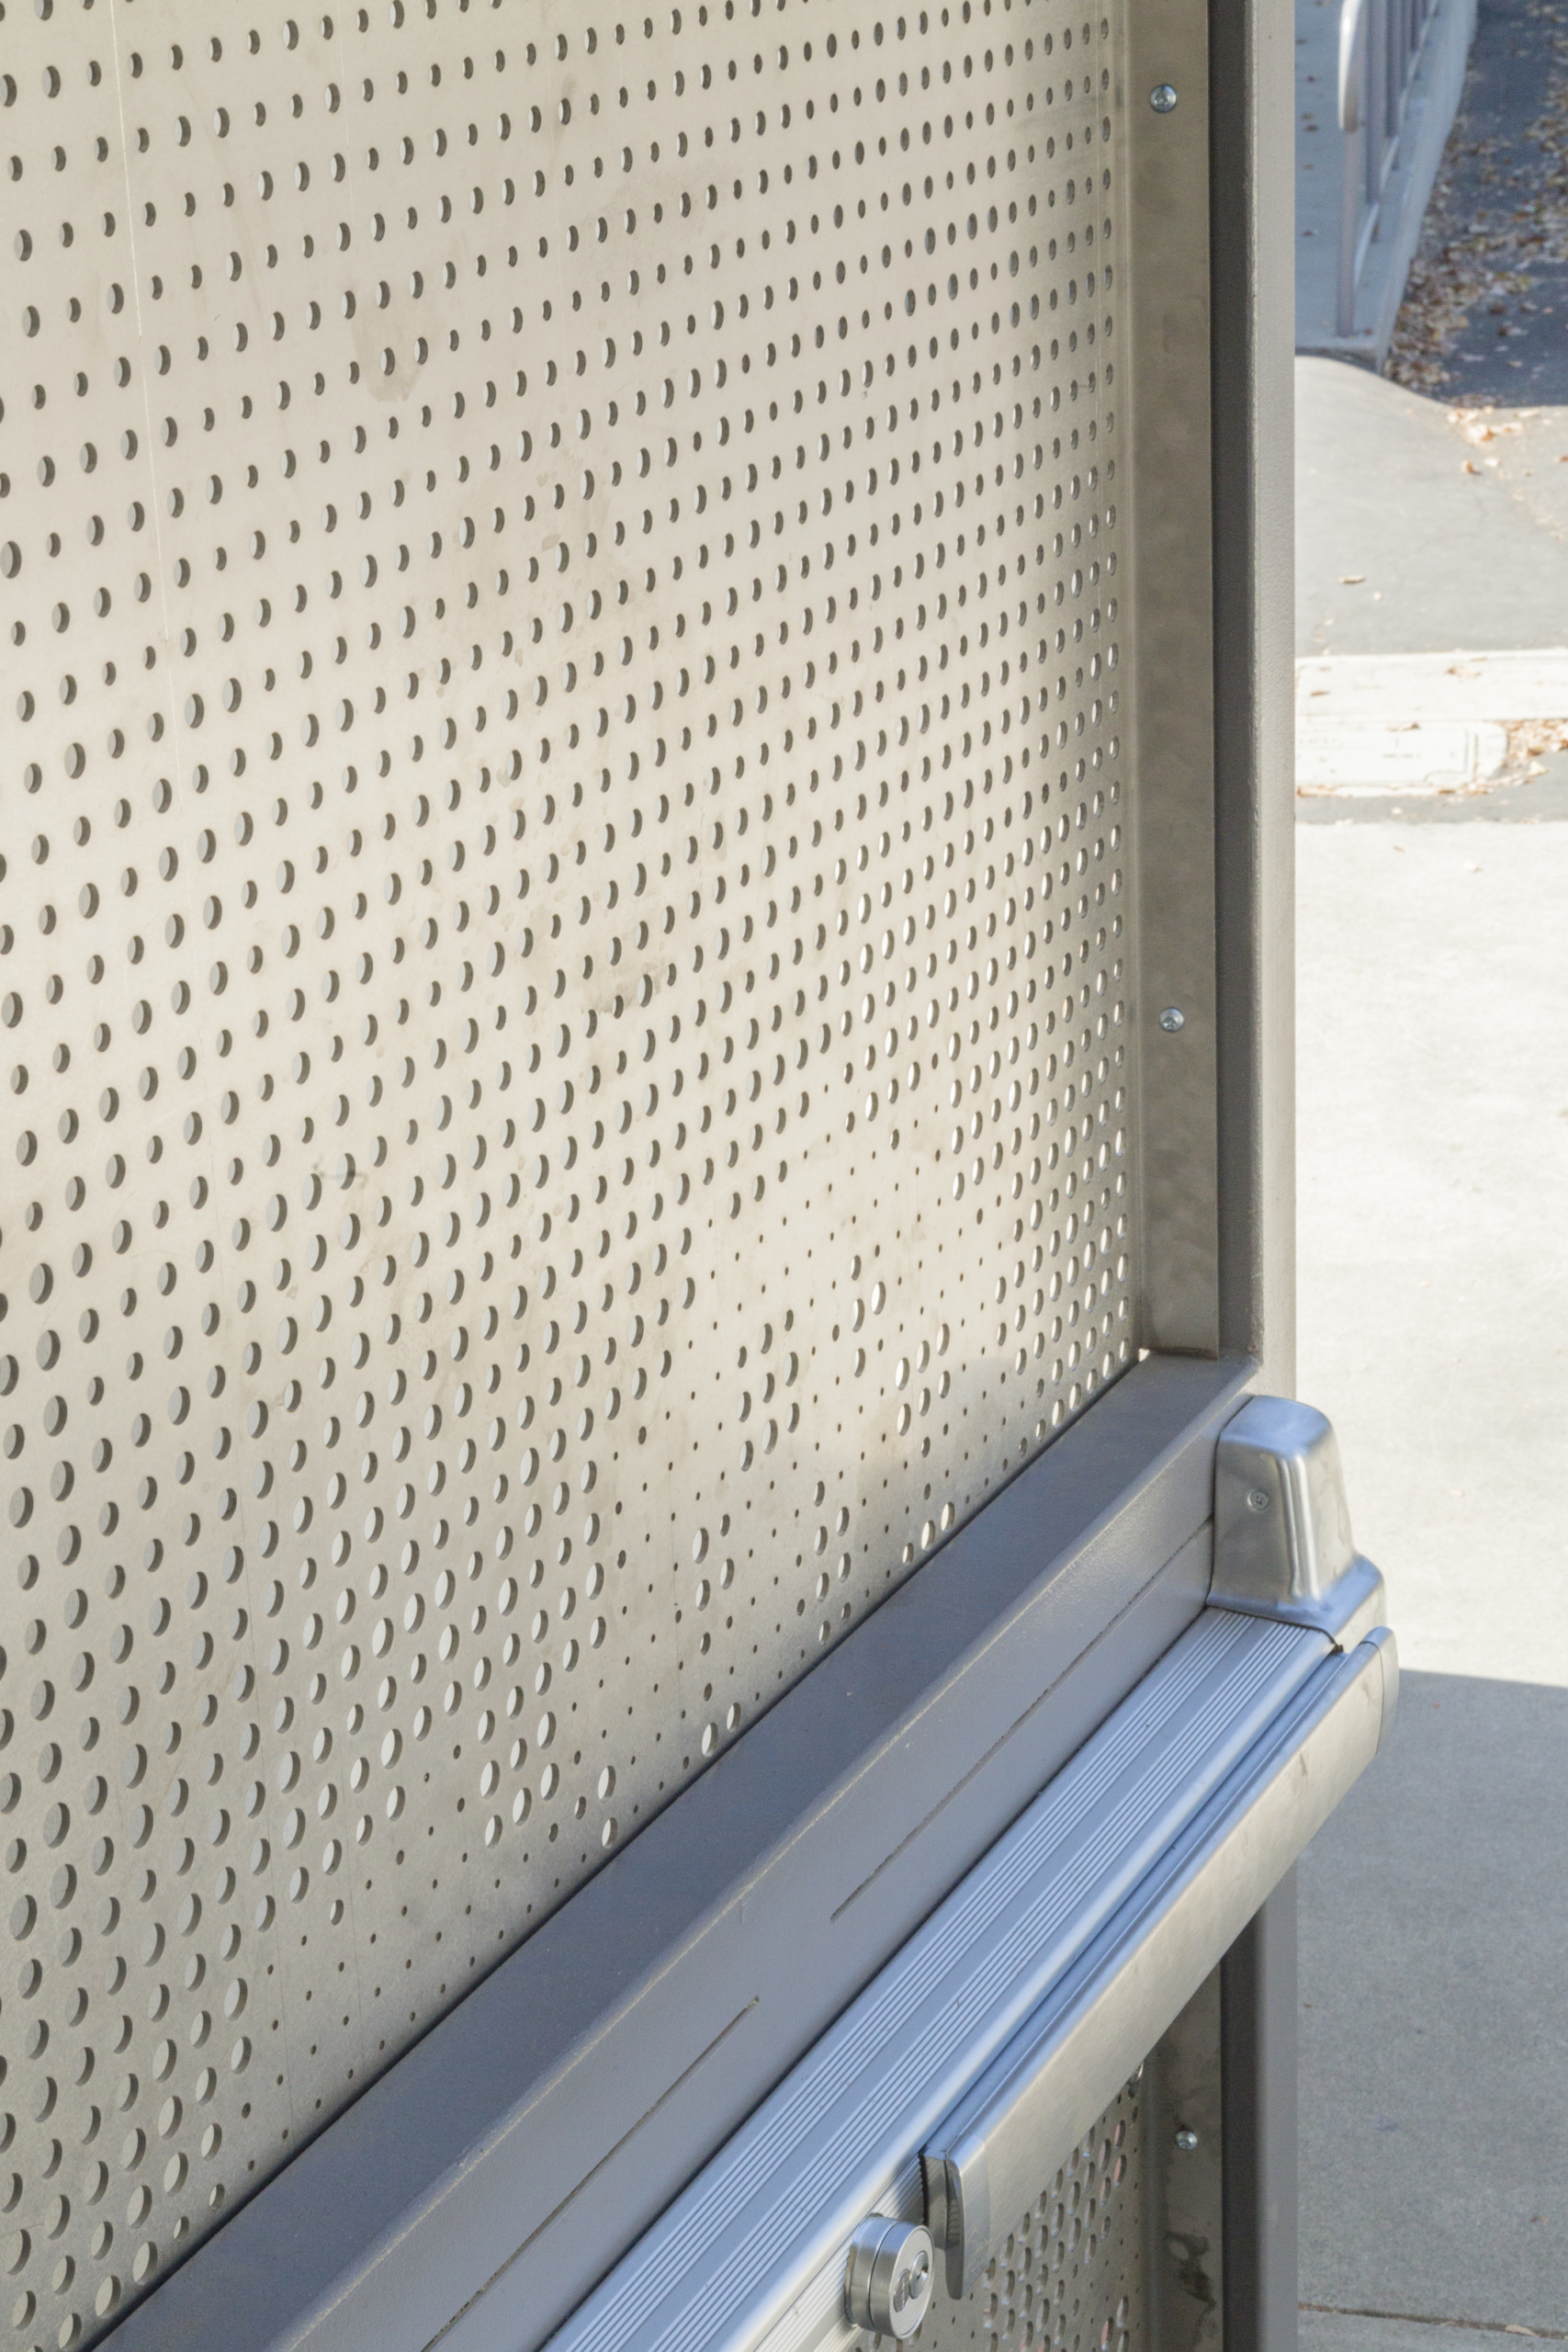 Detail of the perforated stainless steel door.